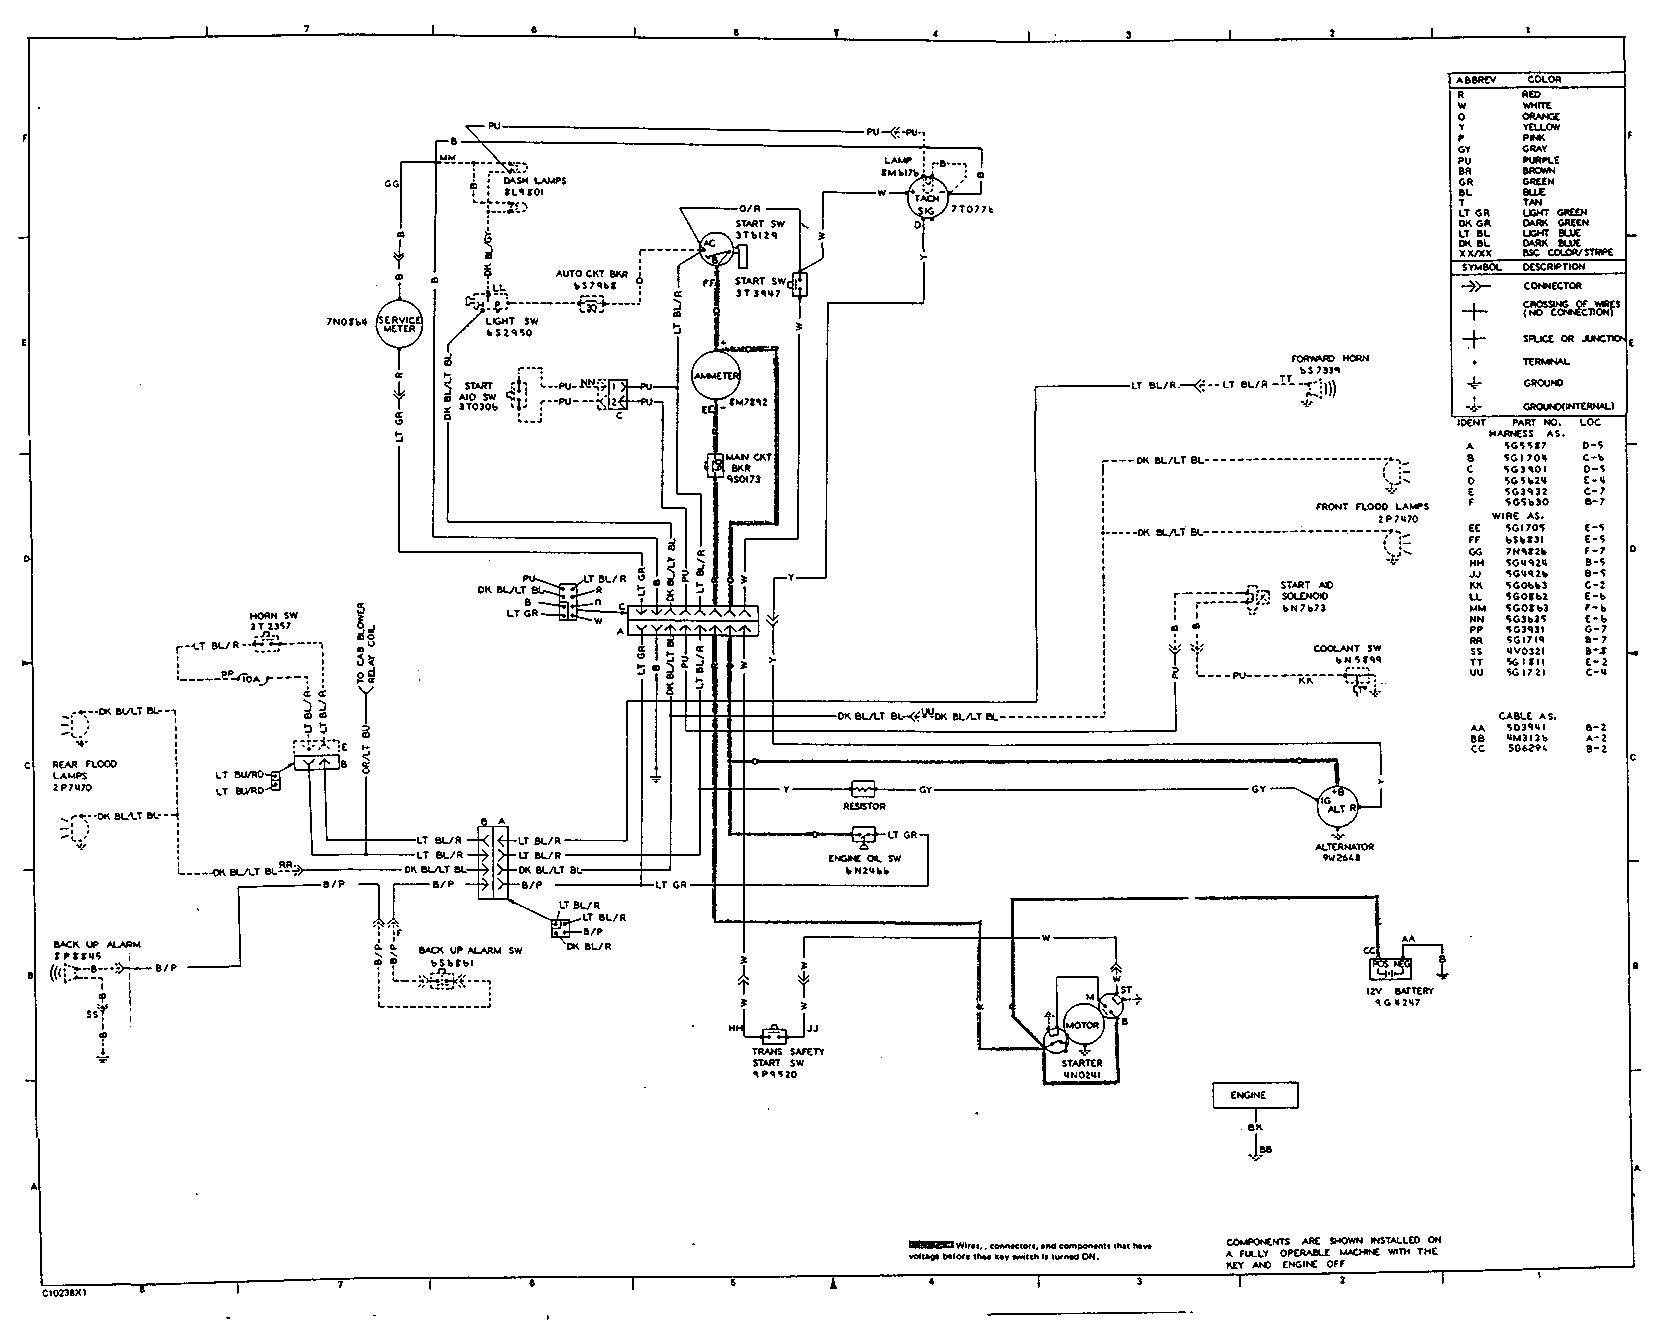 Engine Wiring Diagram Ther With Cat C7 Acert Library Ecm Circuit Caterpillar Besides Cummins Isx